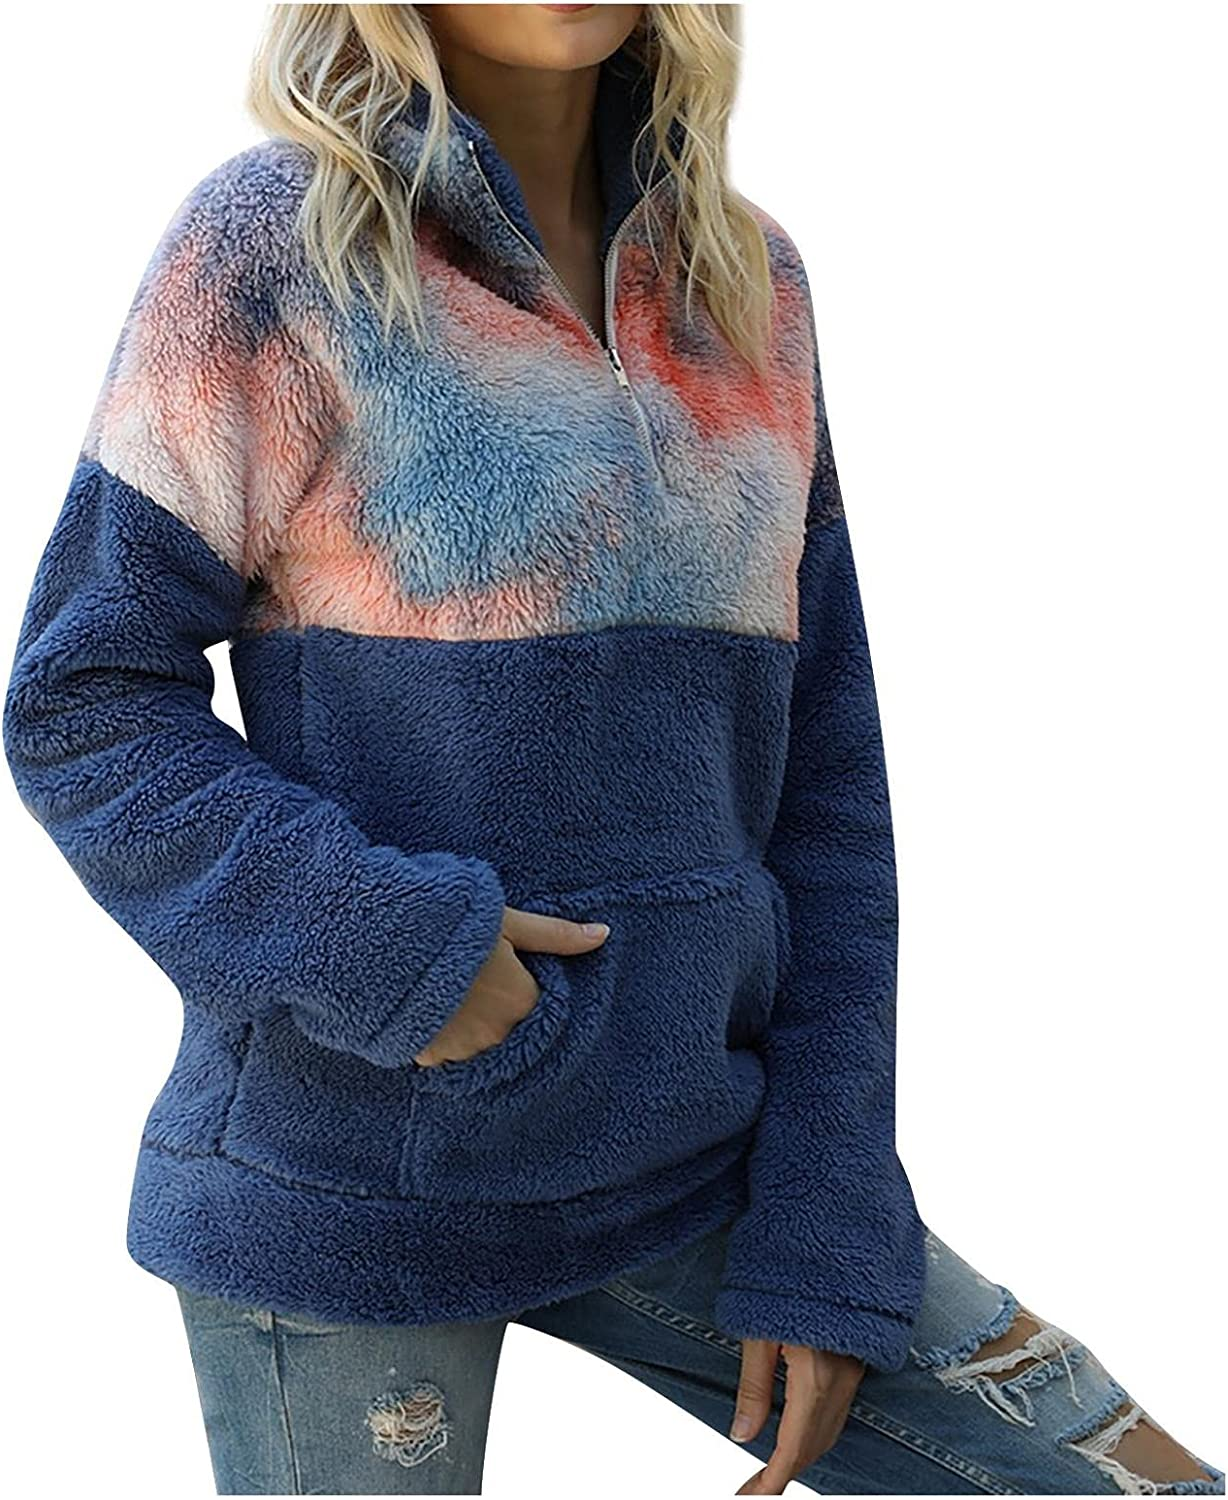 Womens Fuzzy Sweatshirt Hooded Plus Size Blouse Tops Long Sleeve Pullover Coat Tie-Dye Stitching Outerwear for Teen Girls